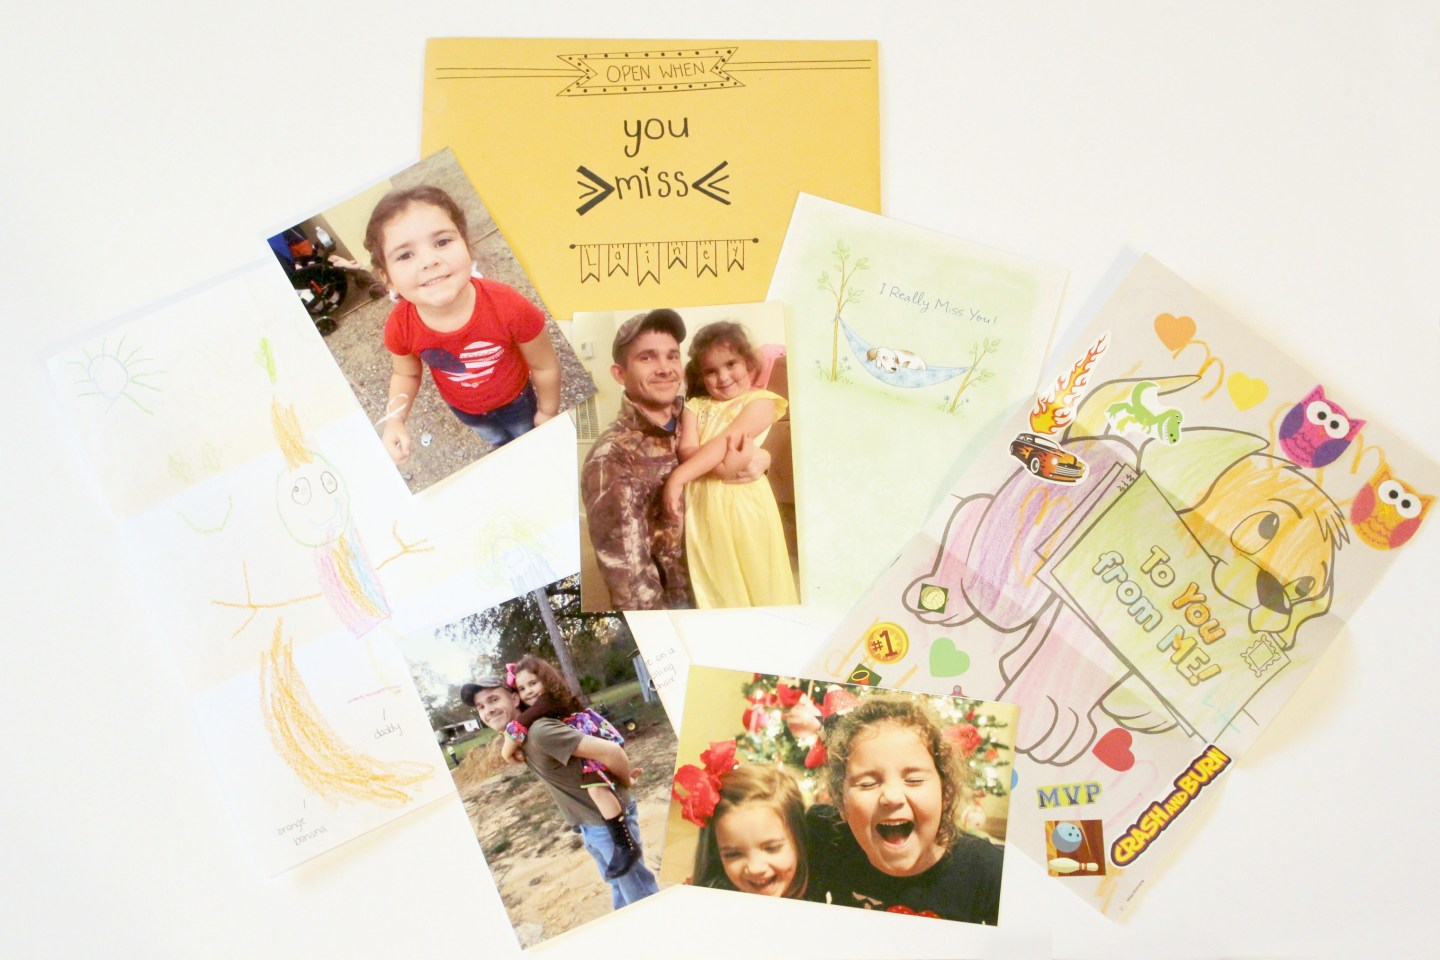 open when letters: open when you miss Lainey